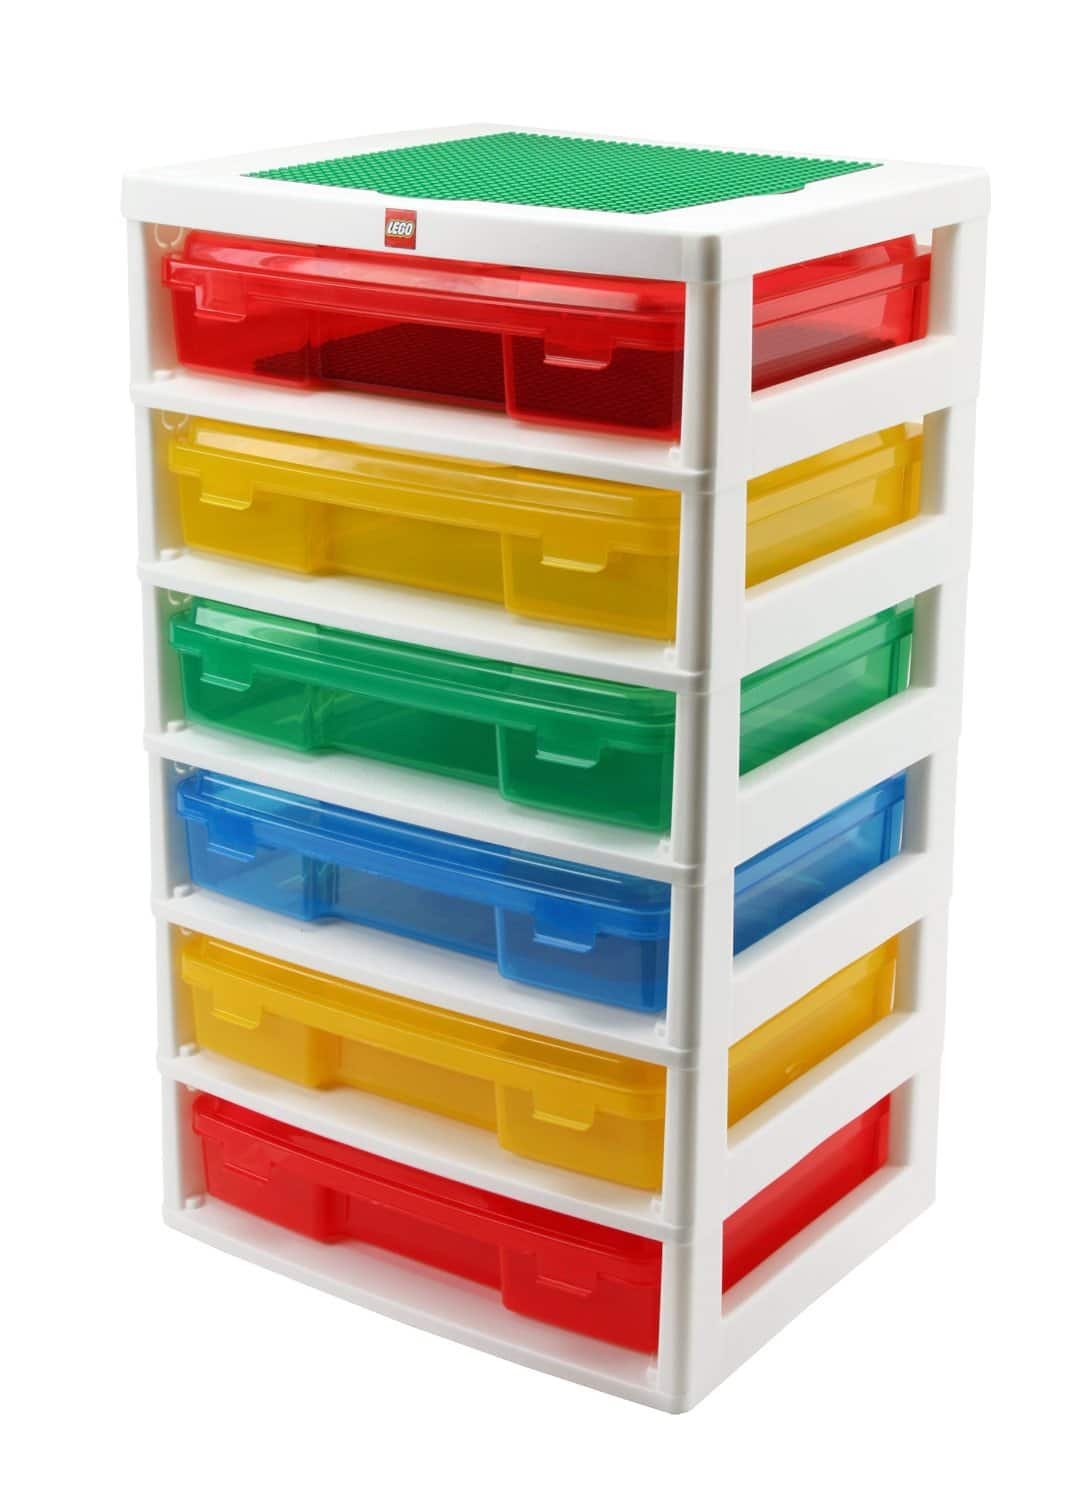 LEGO Iris 6-Case Workstation & Storage Unit W/ 2 Base Plates $38.99 Free Shipping w/Amazon Prime